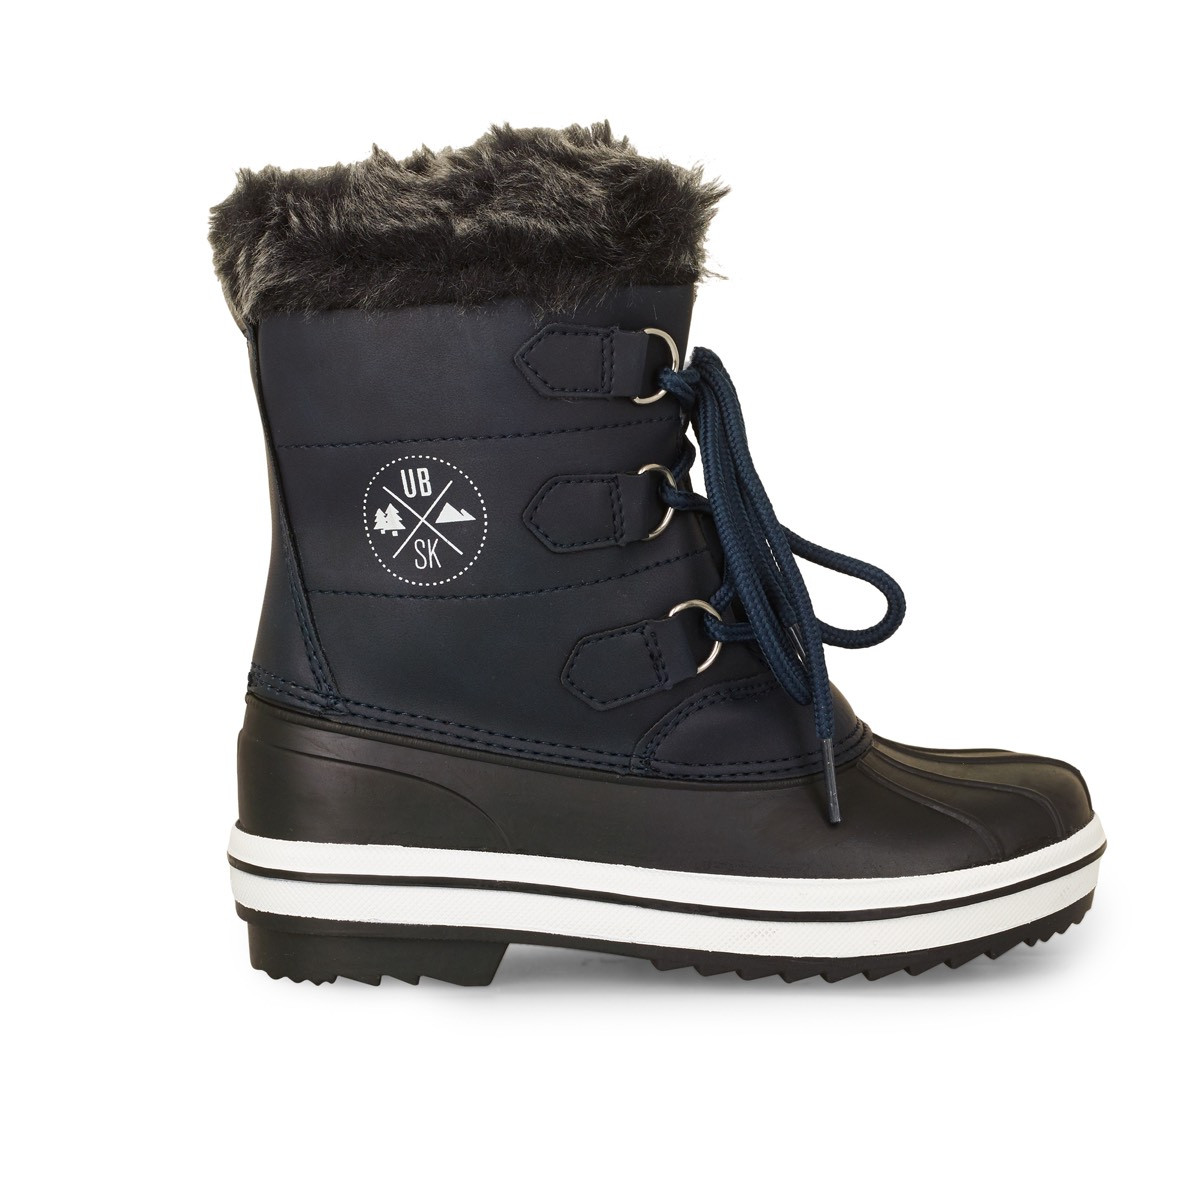 Urberg Varm Kid's Boot Brown